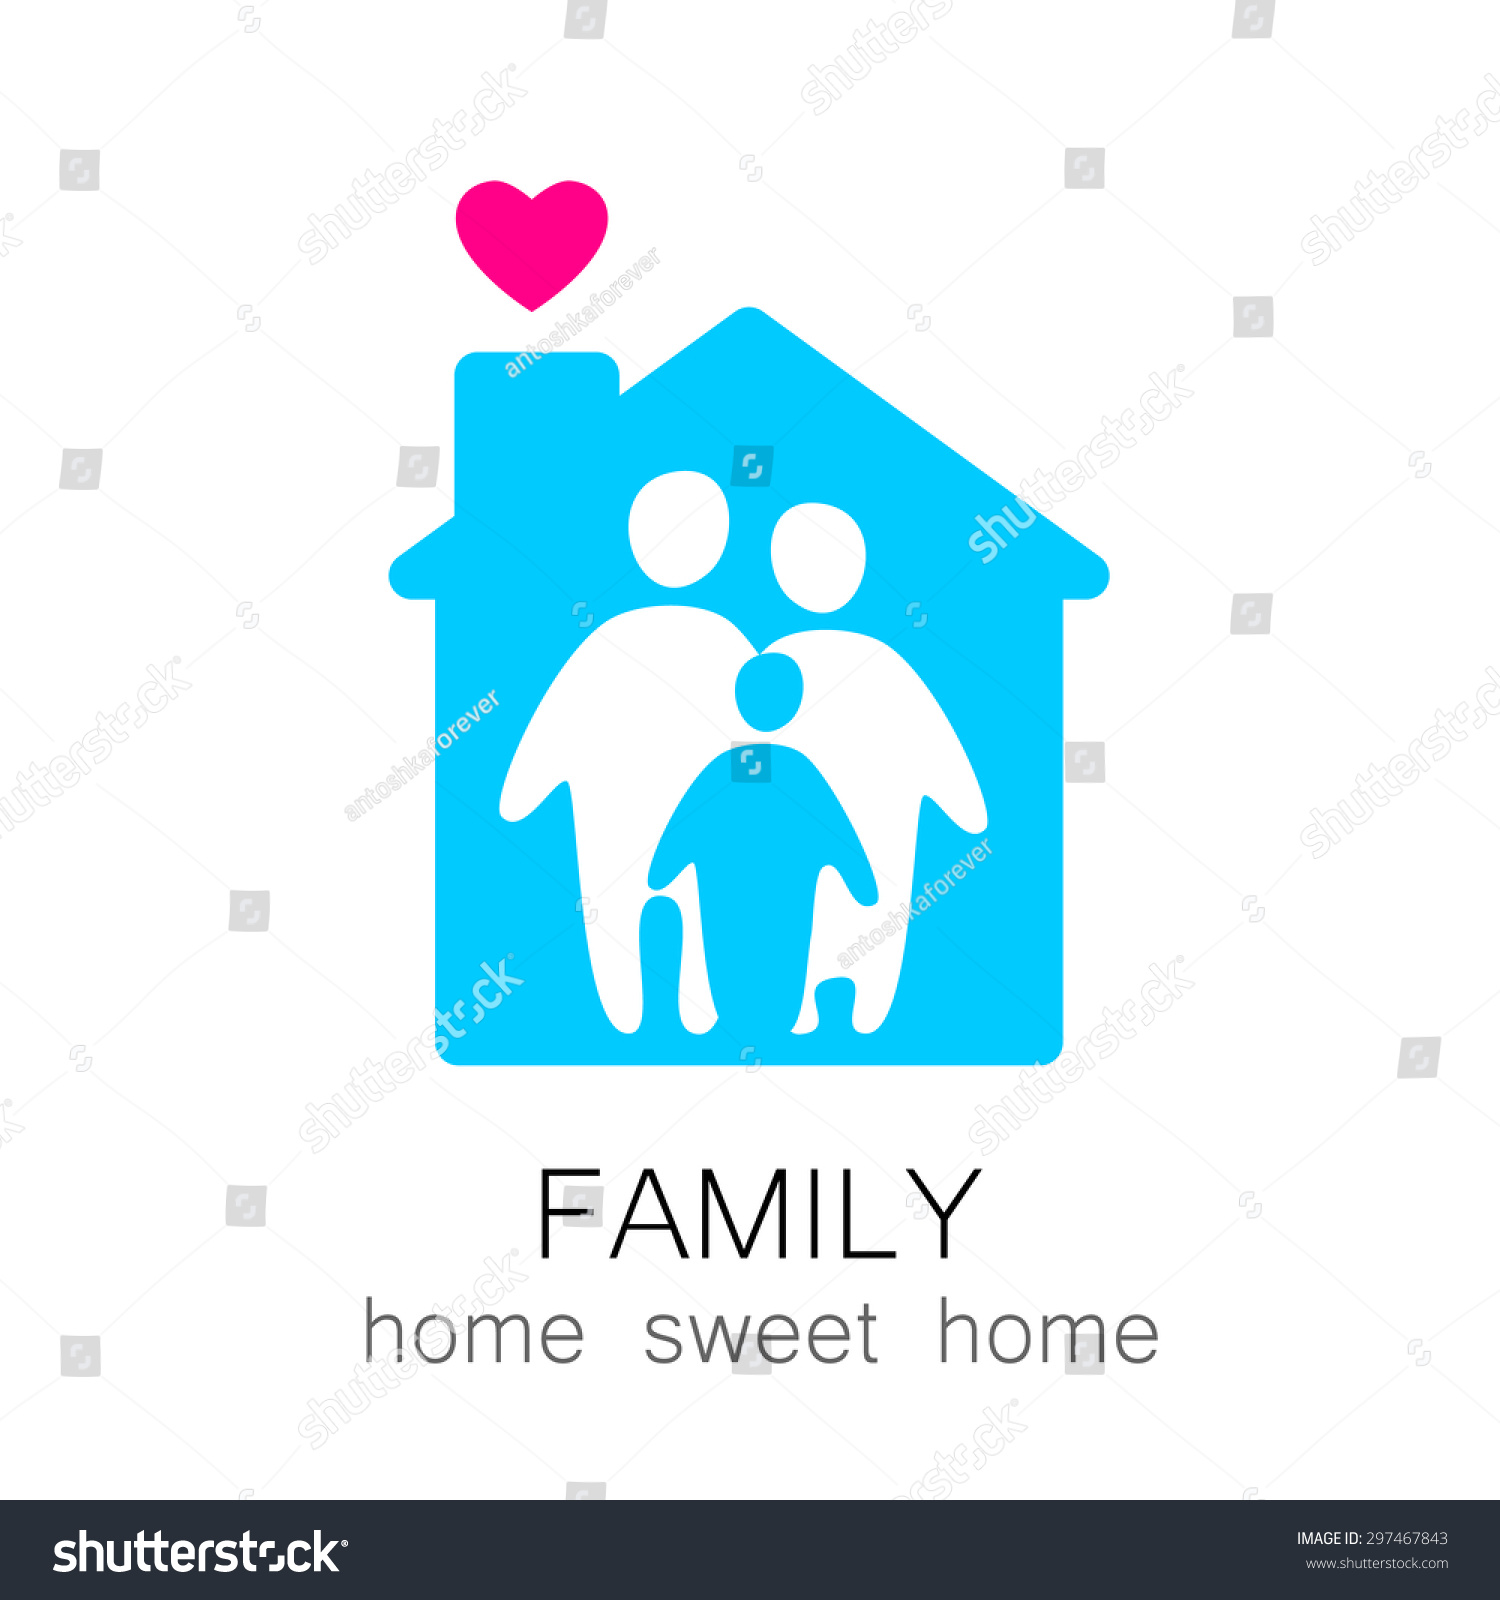 Family and home concept Silhouette family icon and house